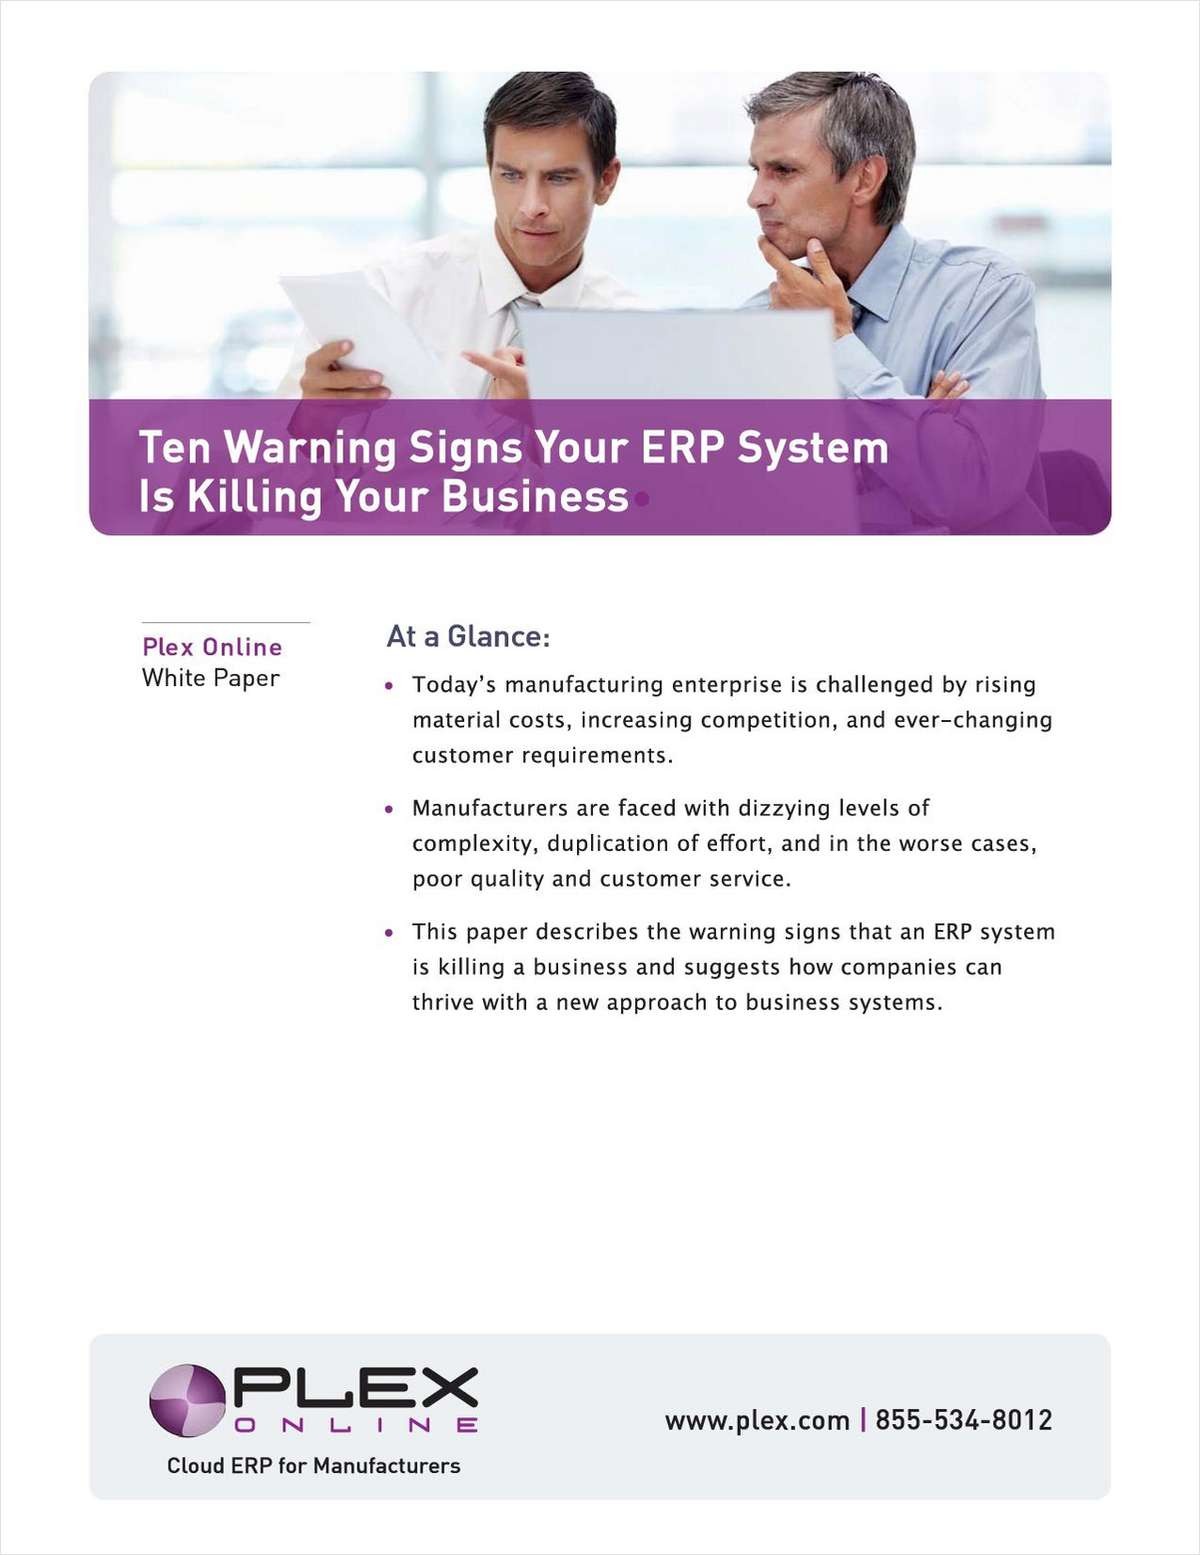 Is Your ERP Killing Your Manufacturing Business? The 10 Warning Signs